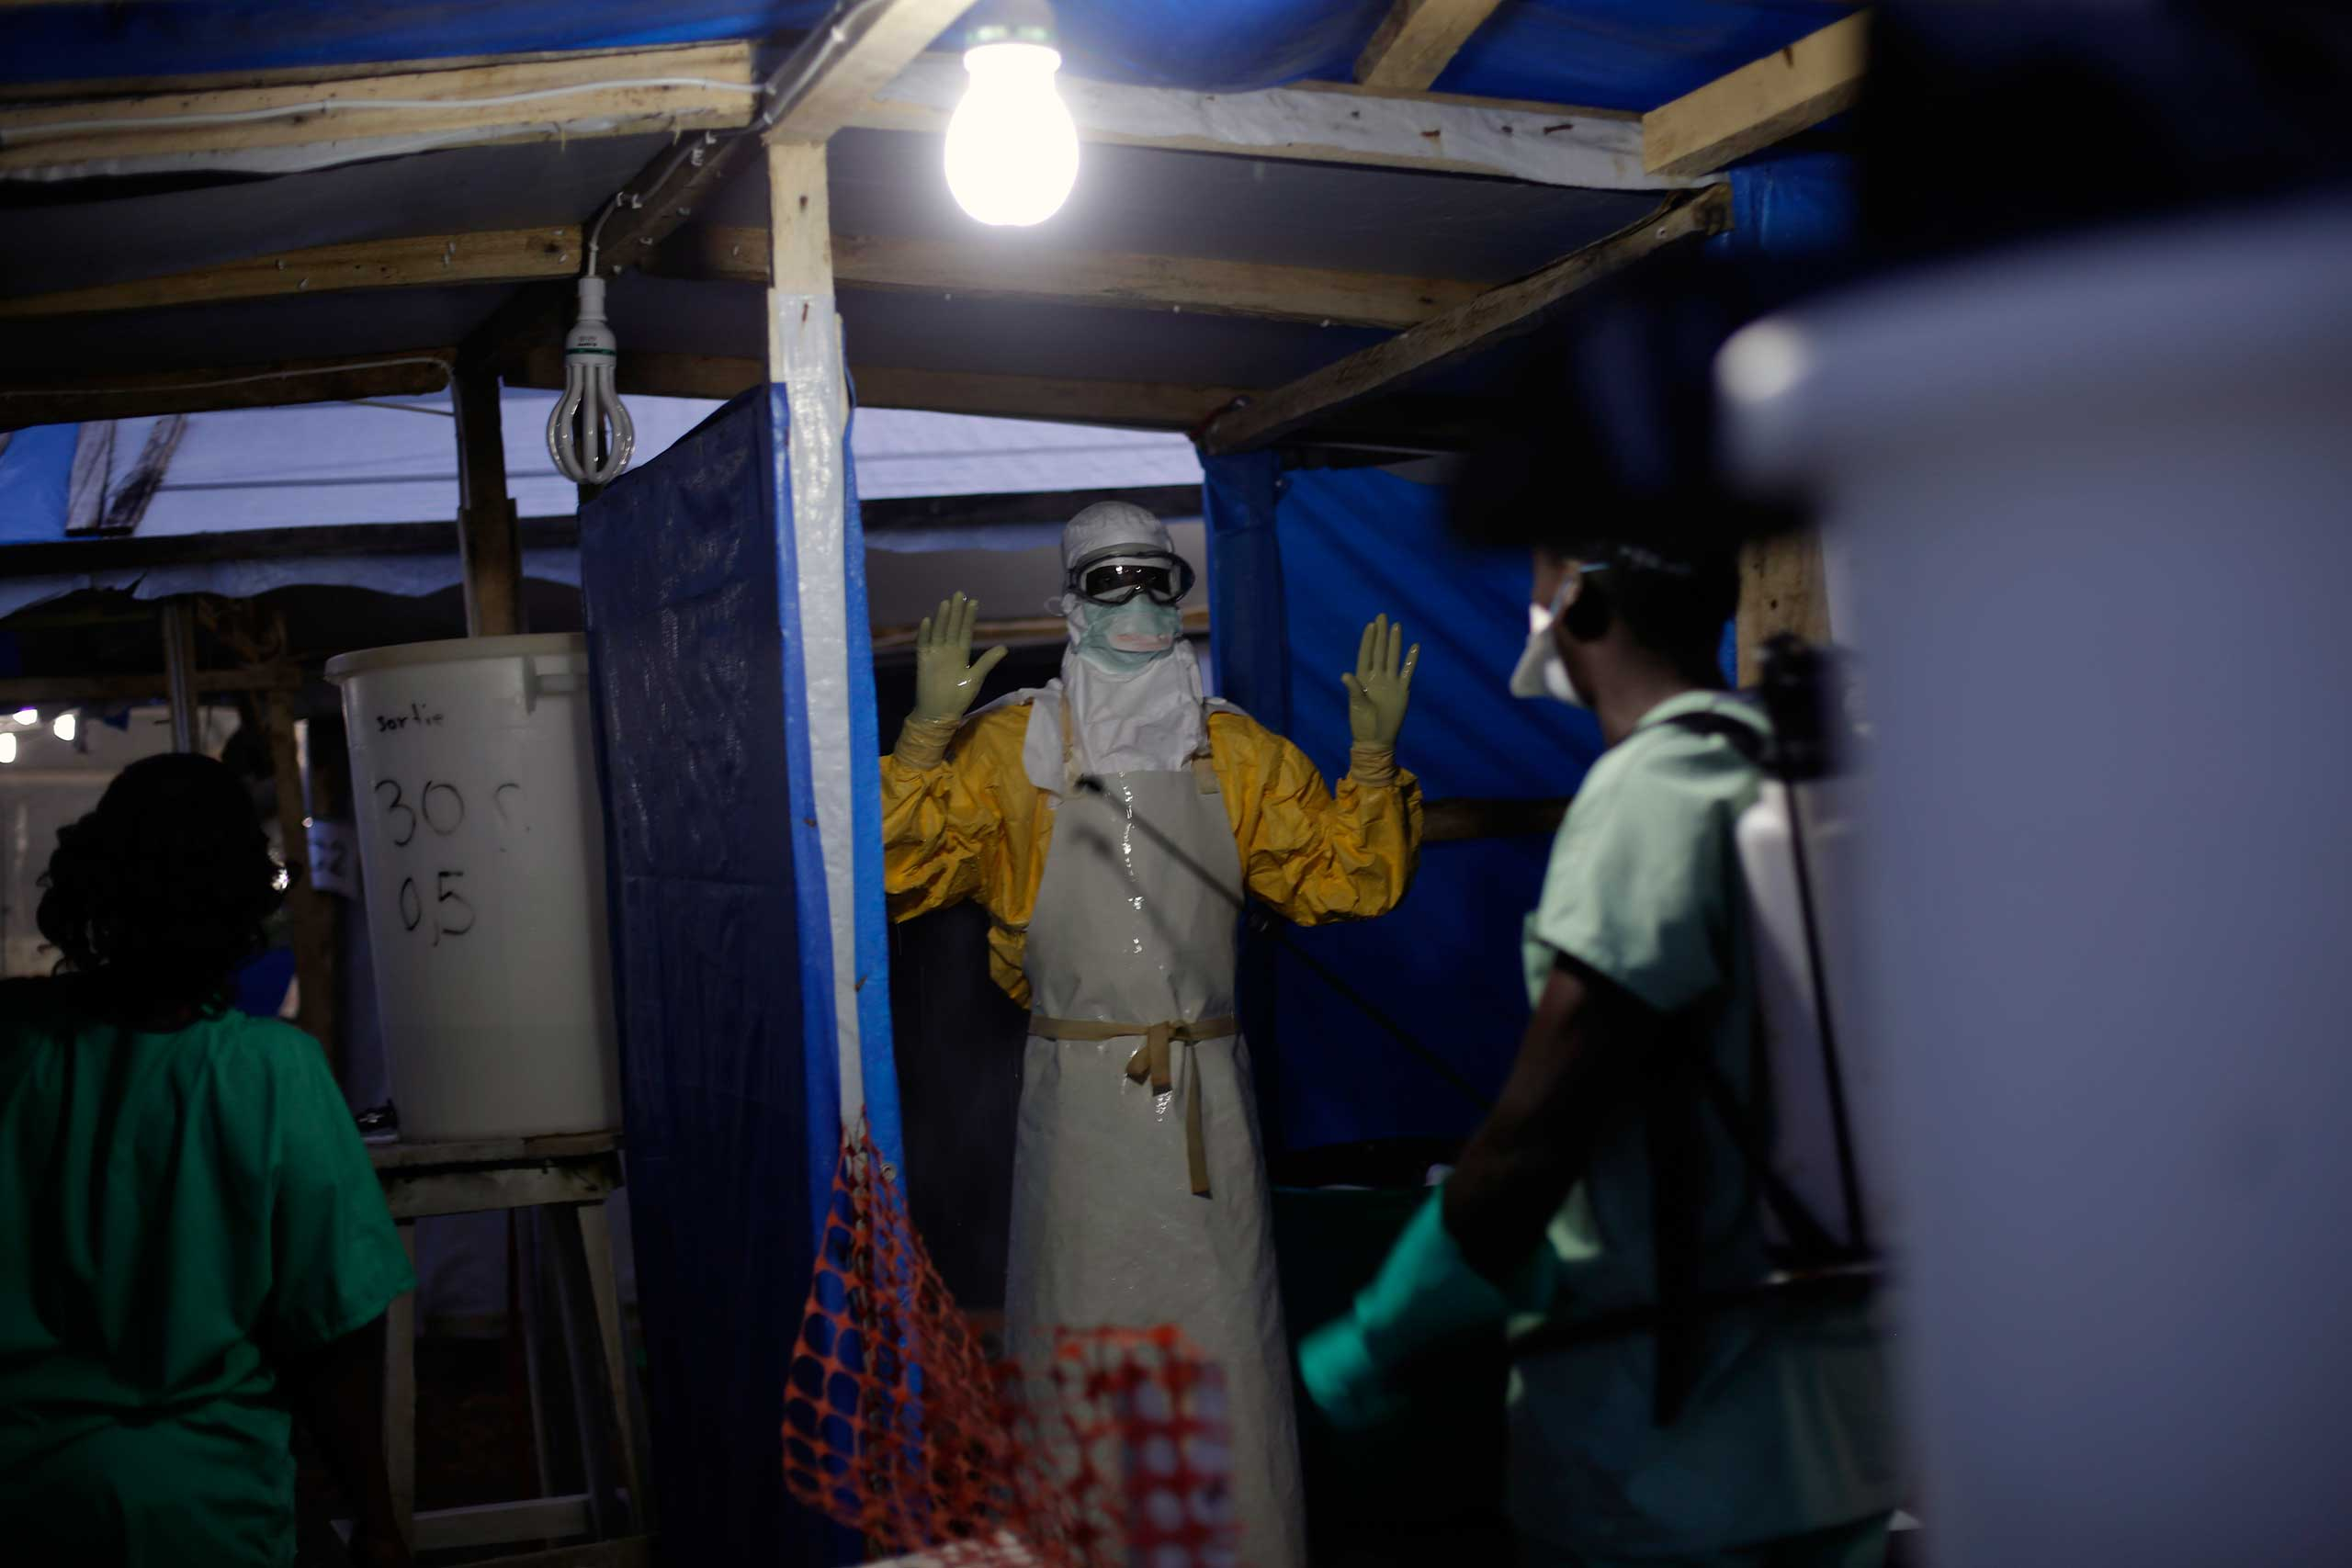 An MSF Ebola heath worker is sprayed as he leaves the contaminated zone at the Ebola treatment centre in Gueckedou, Guinea in Nov. 2014.